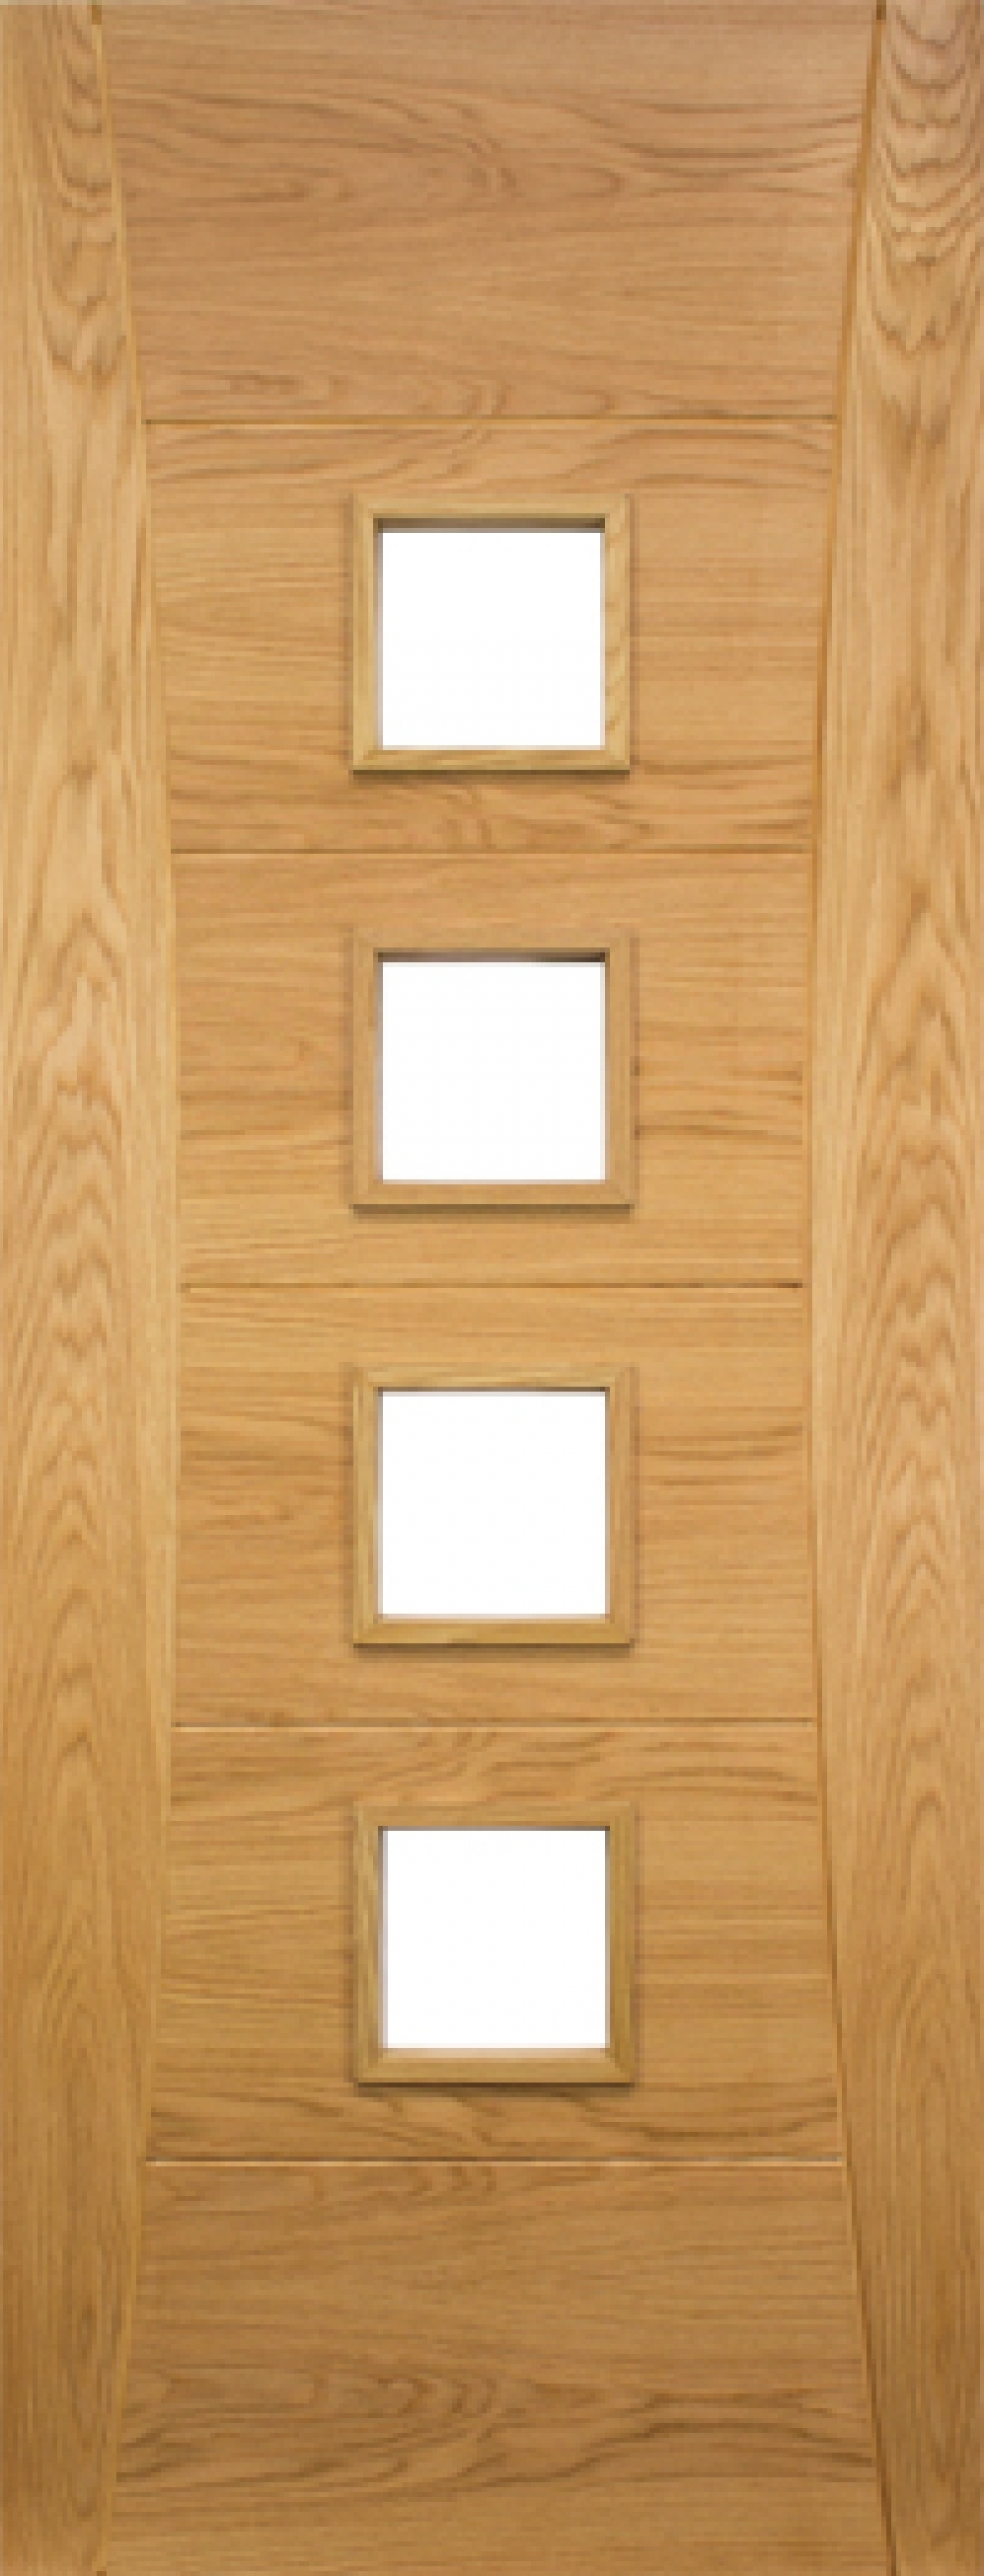 Pamplona Glazed Oak Door - Prefinished